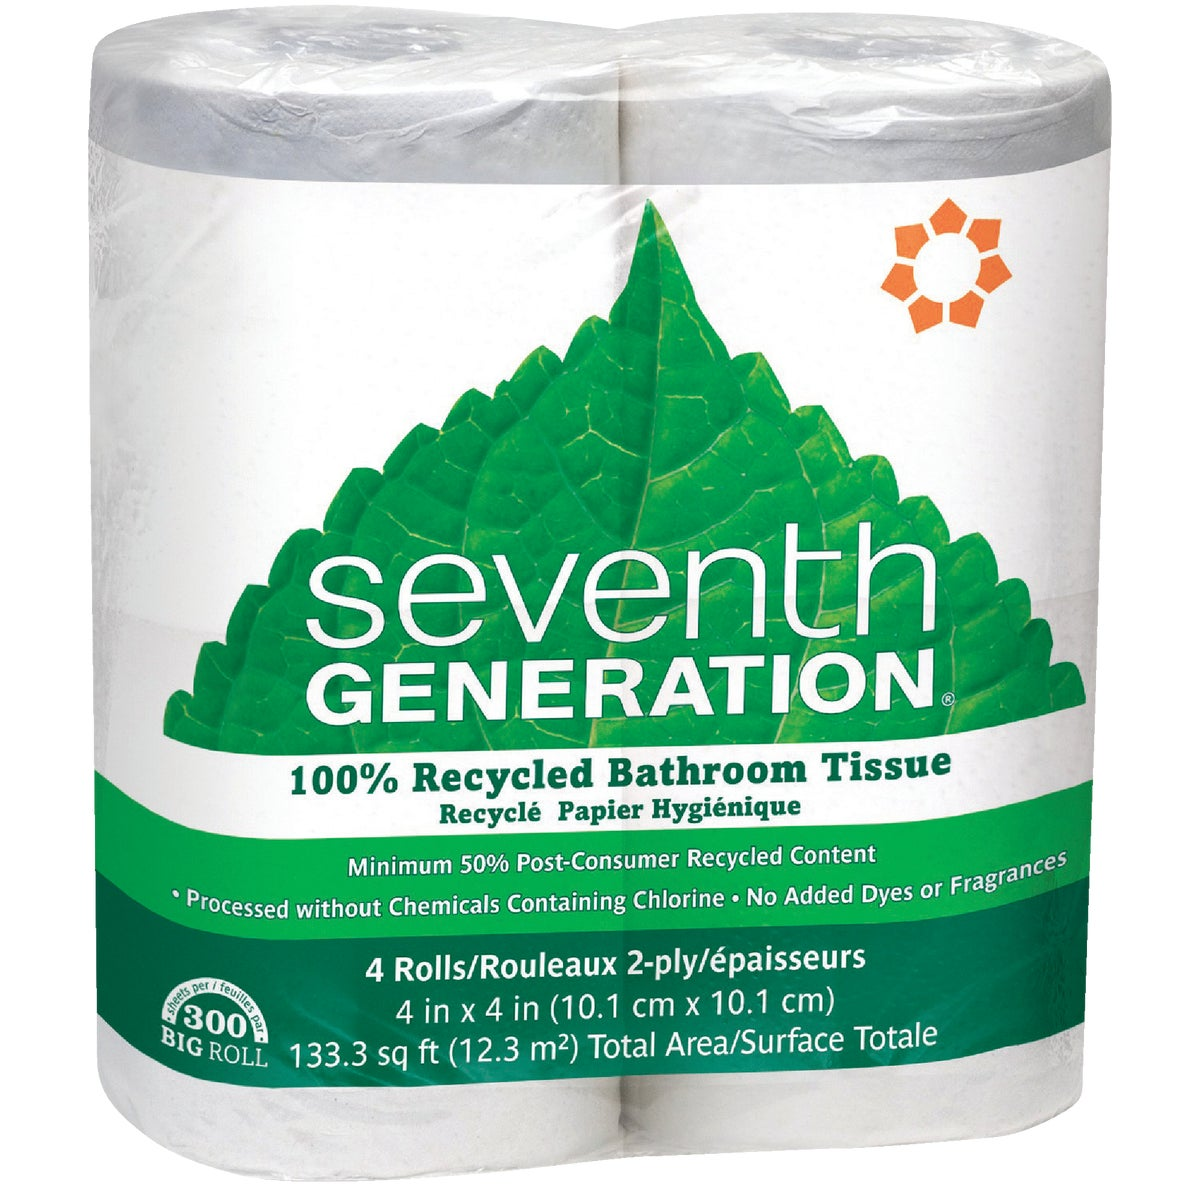 4RL RECYCLED BATH TISSUE - 10732913137326 by Seventh Generation